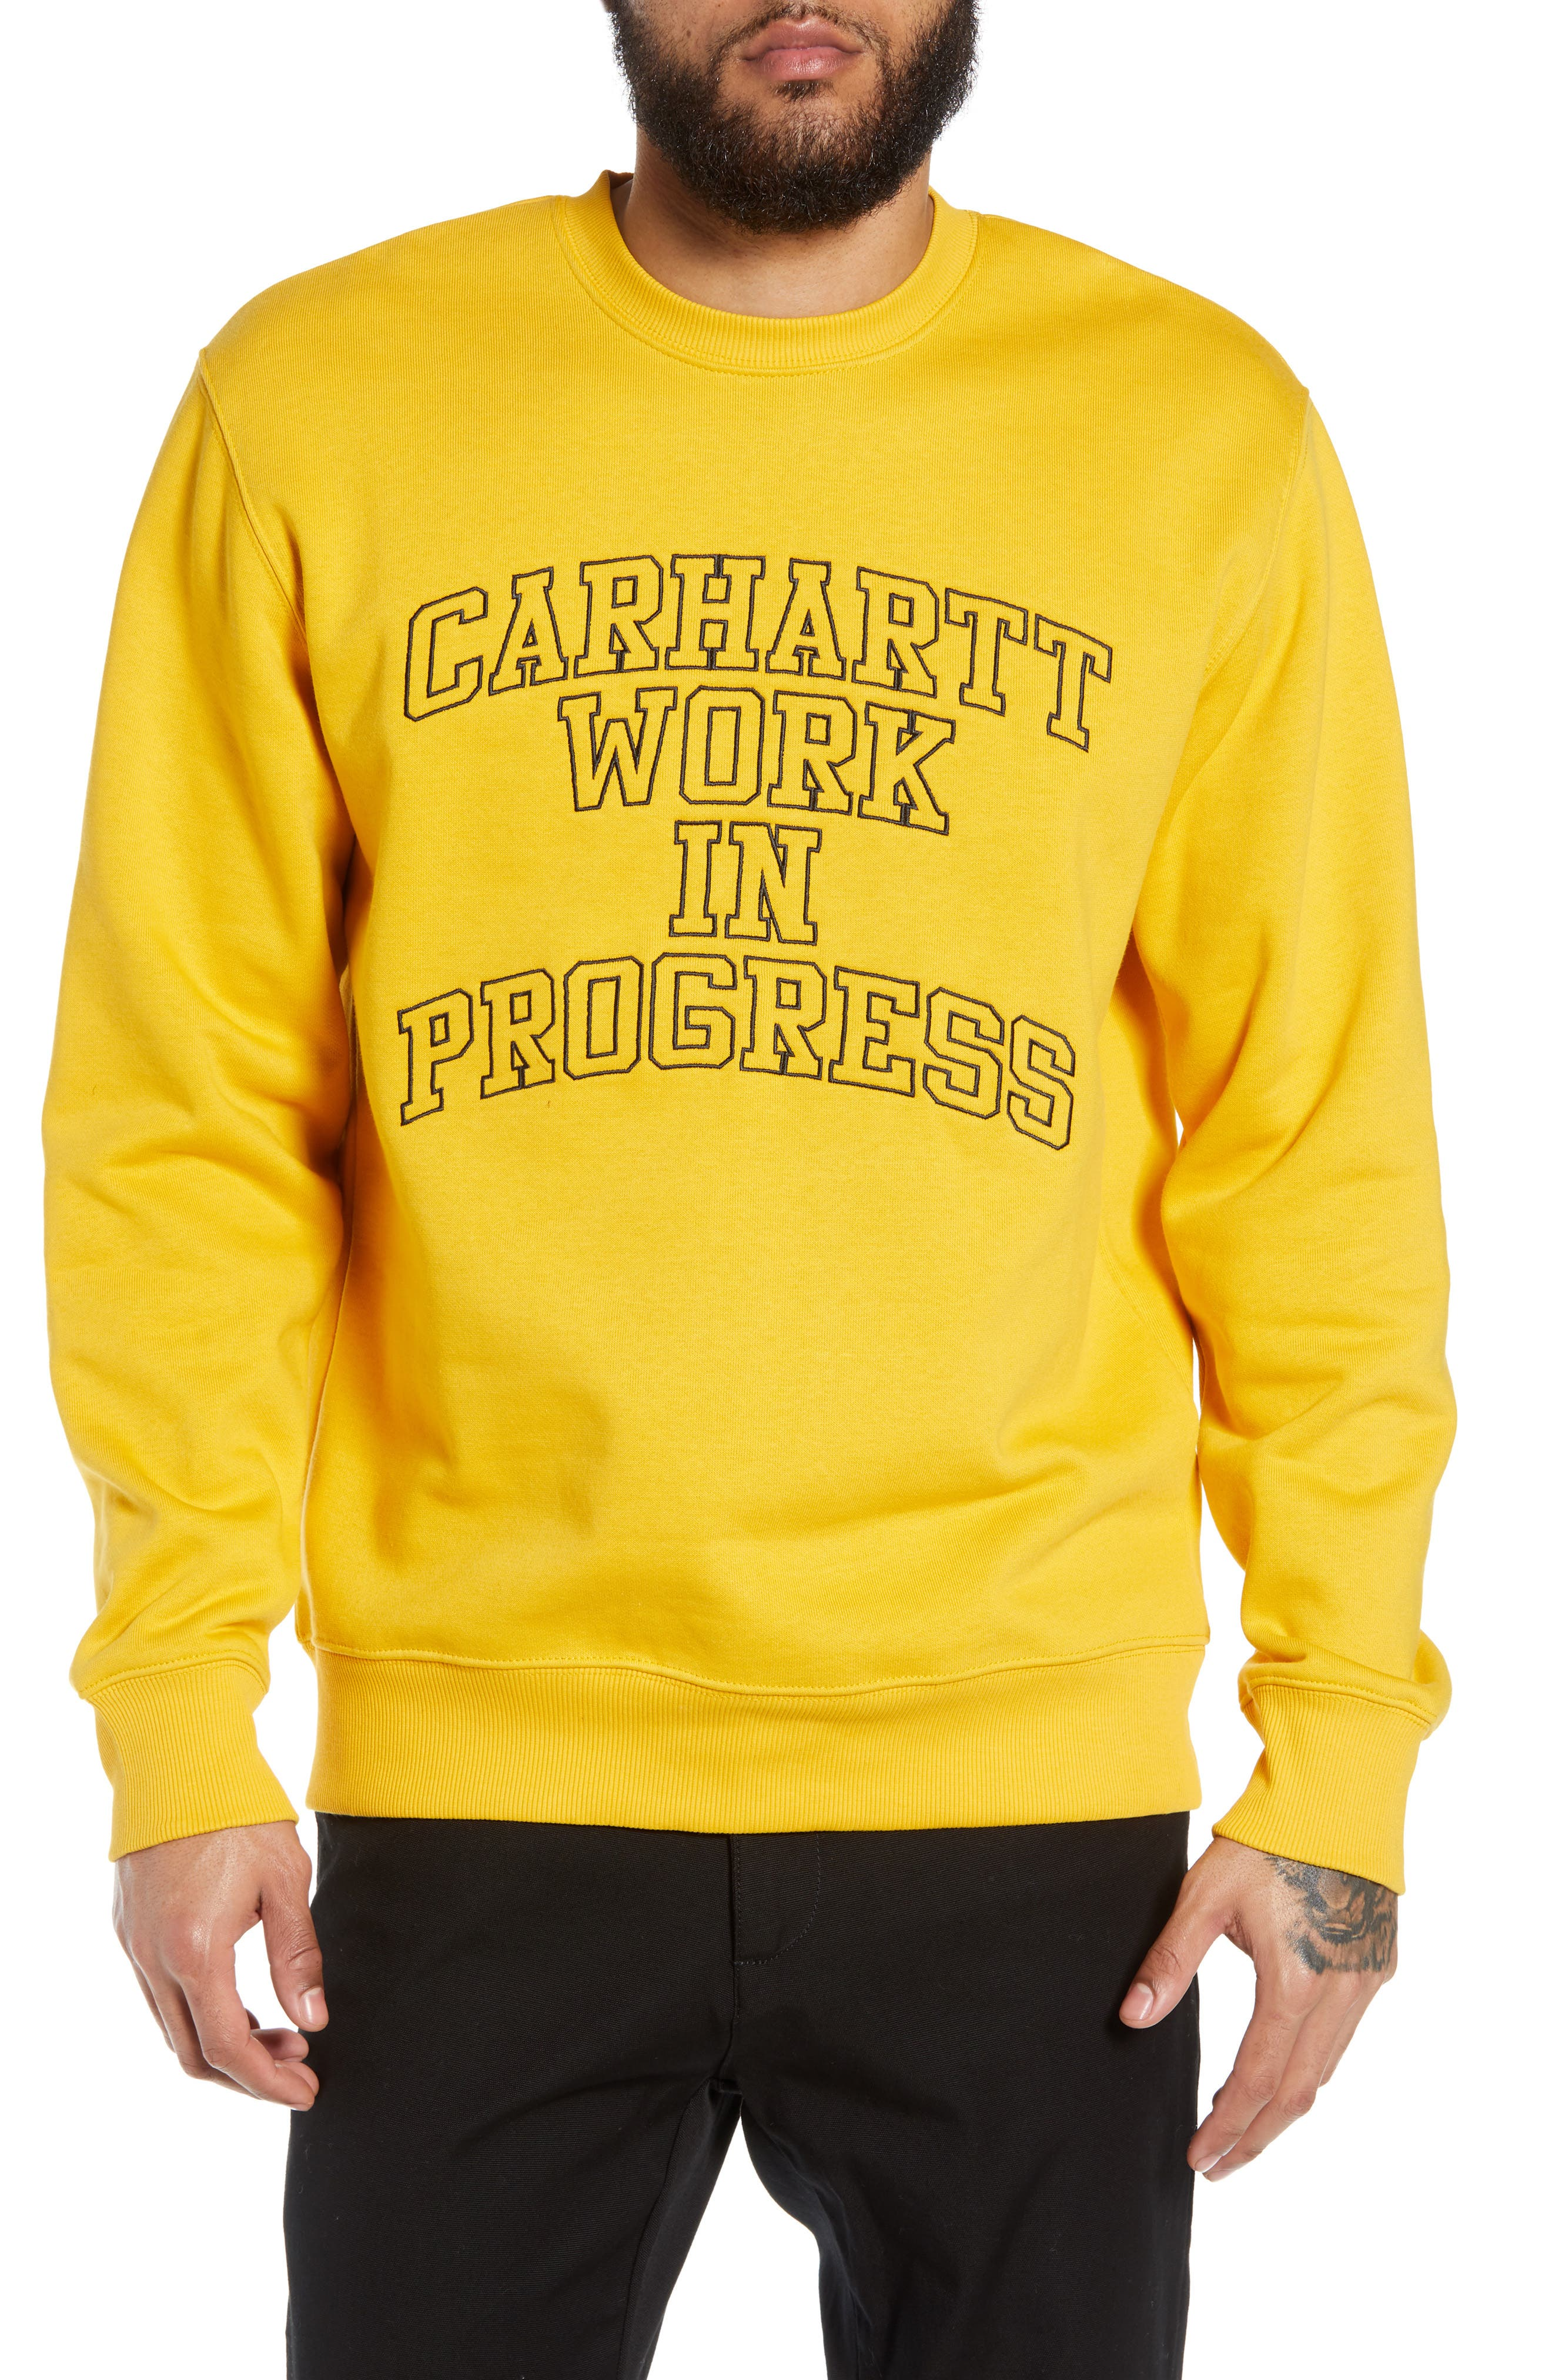 CARHARTT WORK IN PROGRESS Wip Division Embroidered Sweatshirt in Quince / Black